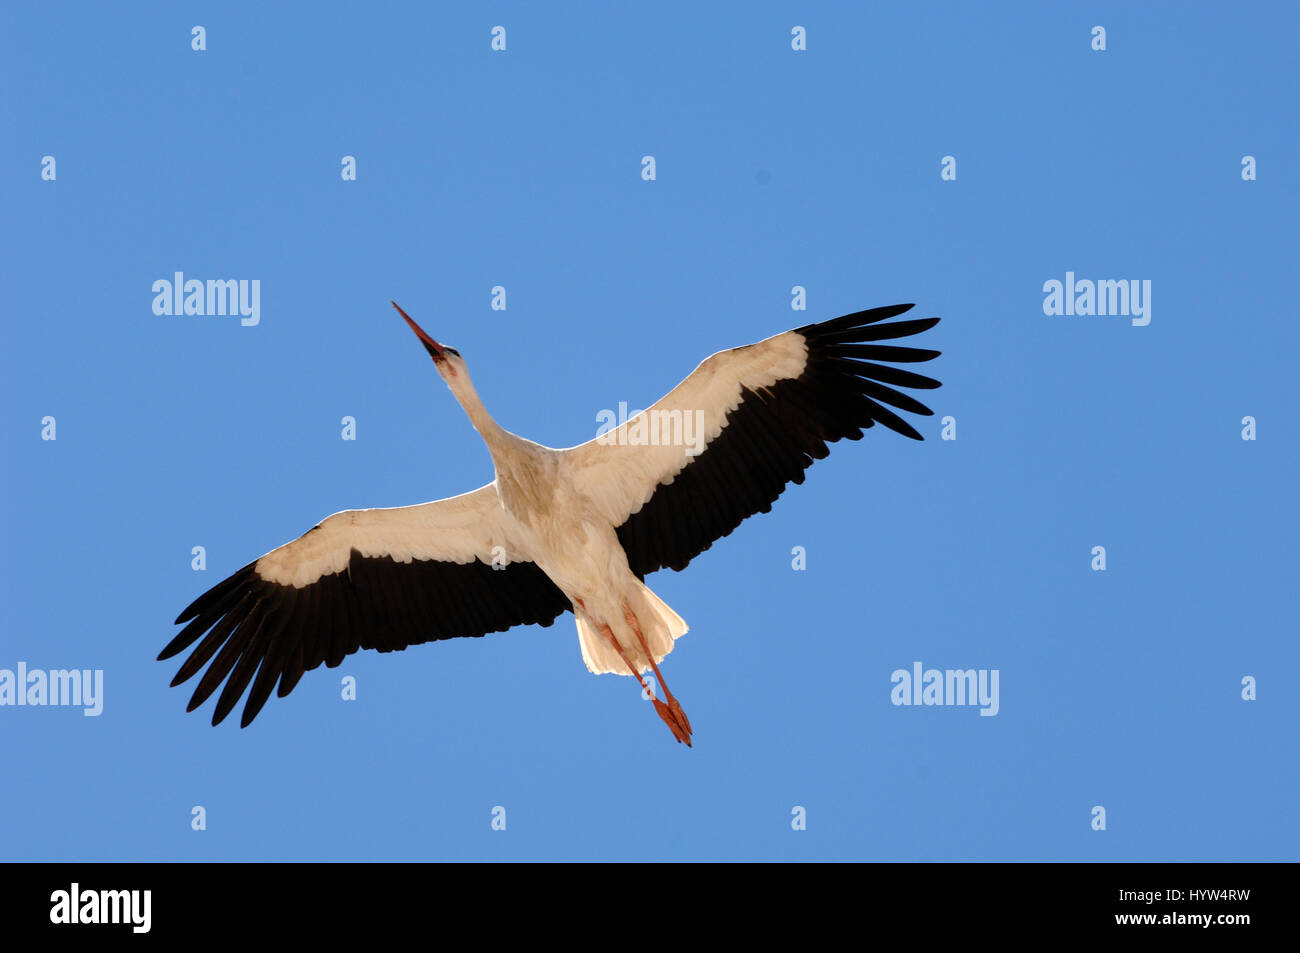 Single White Stork, Ciconia ciconia, Flying Wings Outstretched Against Clear Blue Sky Stock Photo